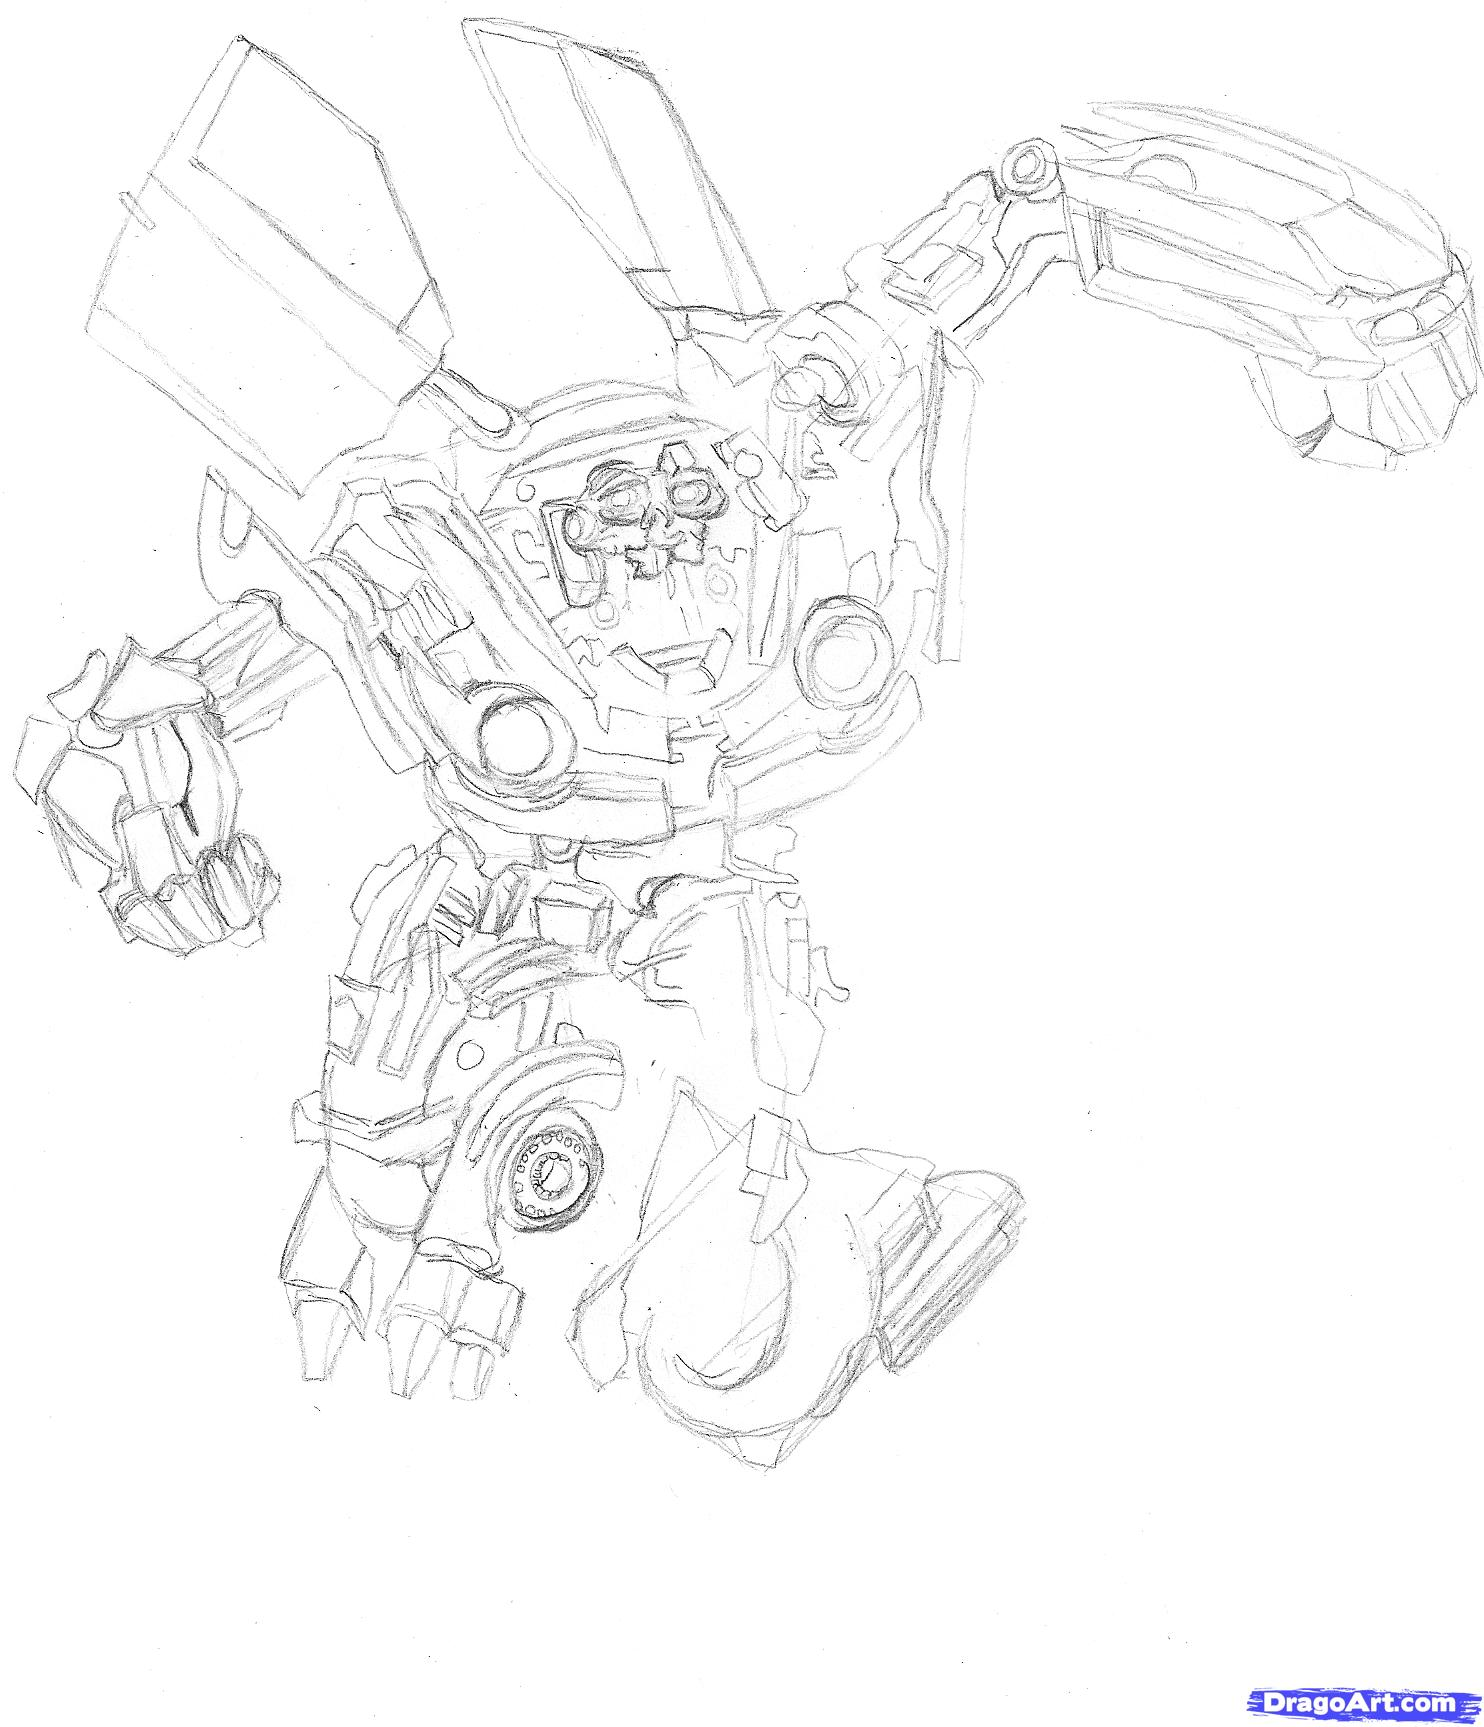 Drawn transformers Drawing Transformers Characters Mudflap transformers Draw how 2